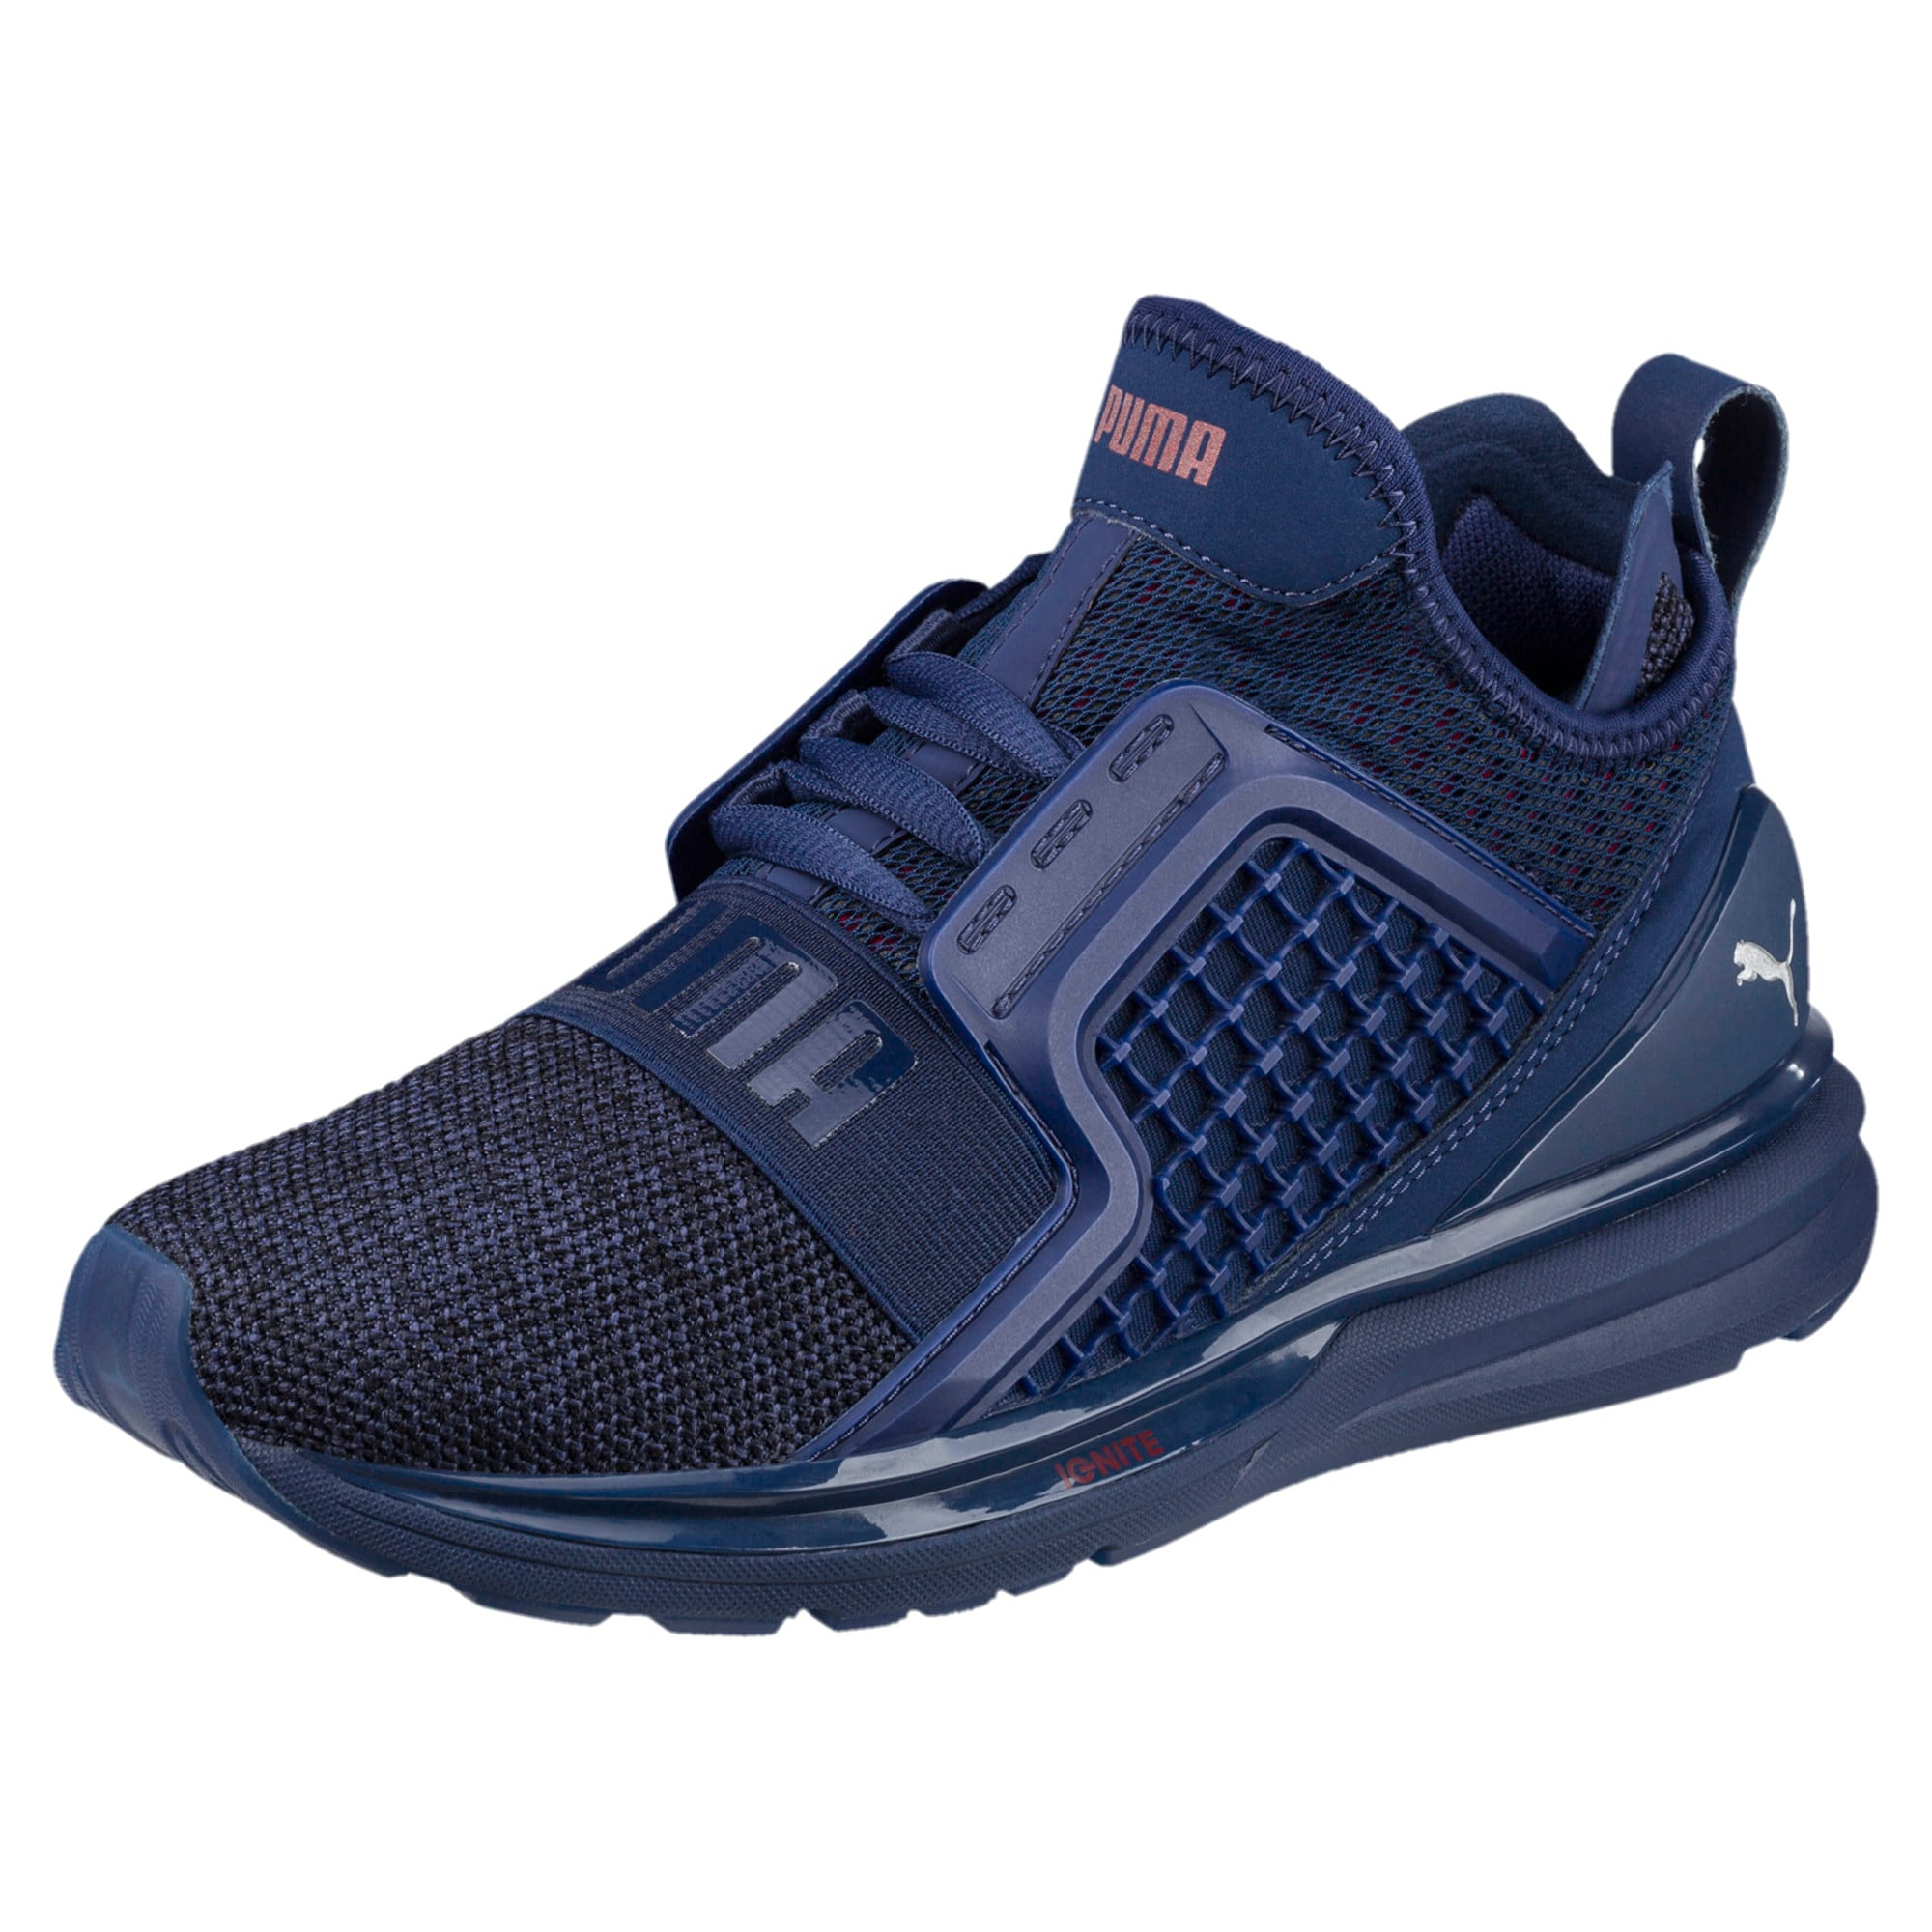 Thumbnail 1 of IGNITE Limitless Knit Kids' Trainers, Blue Depths-Toreador, medium-IND